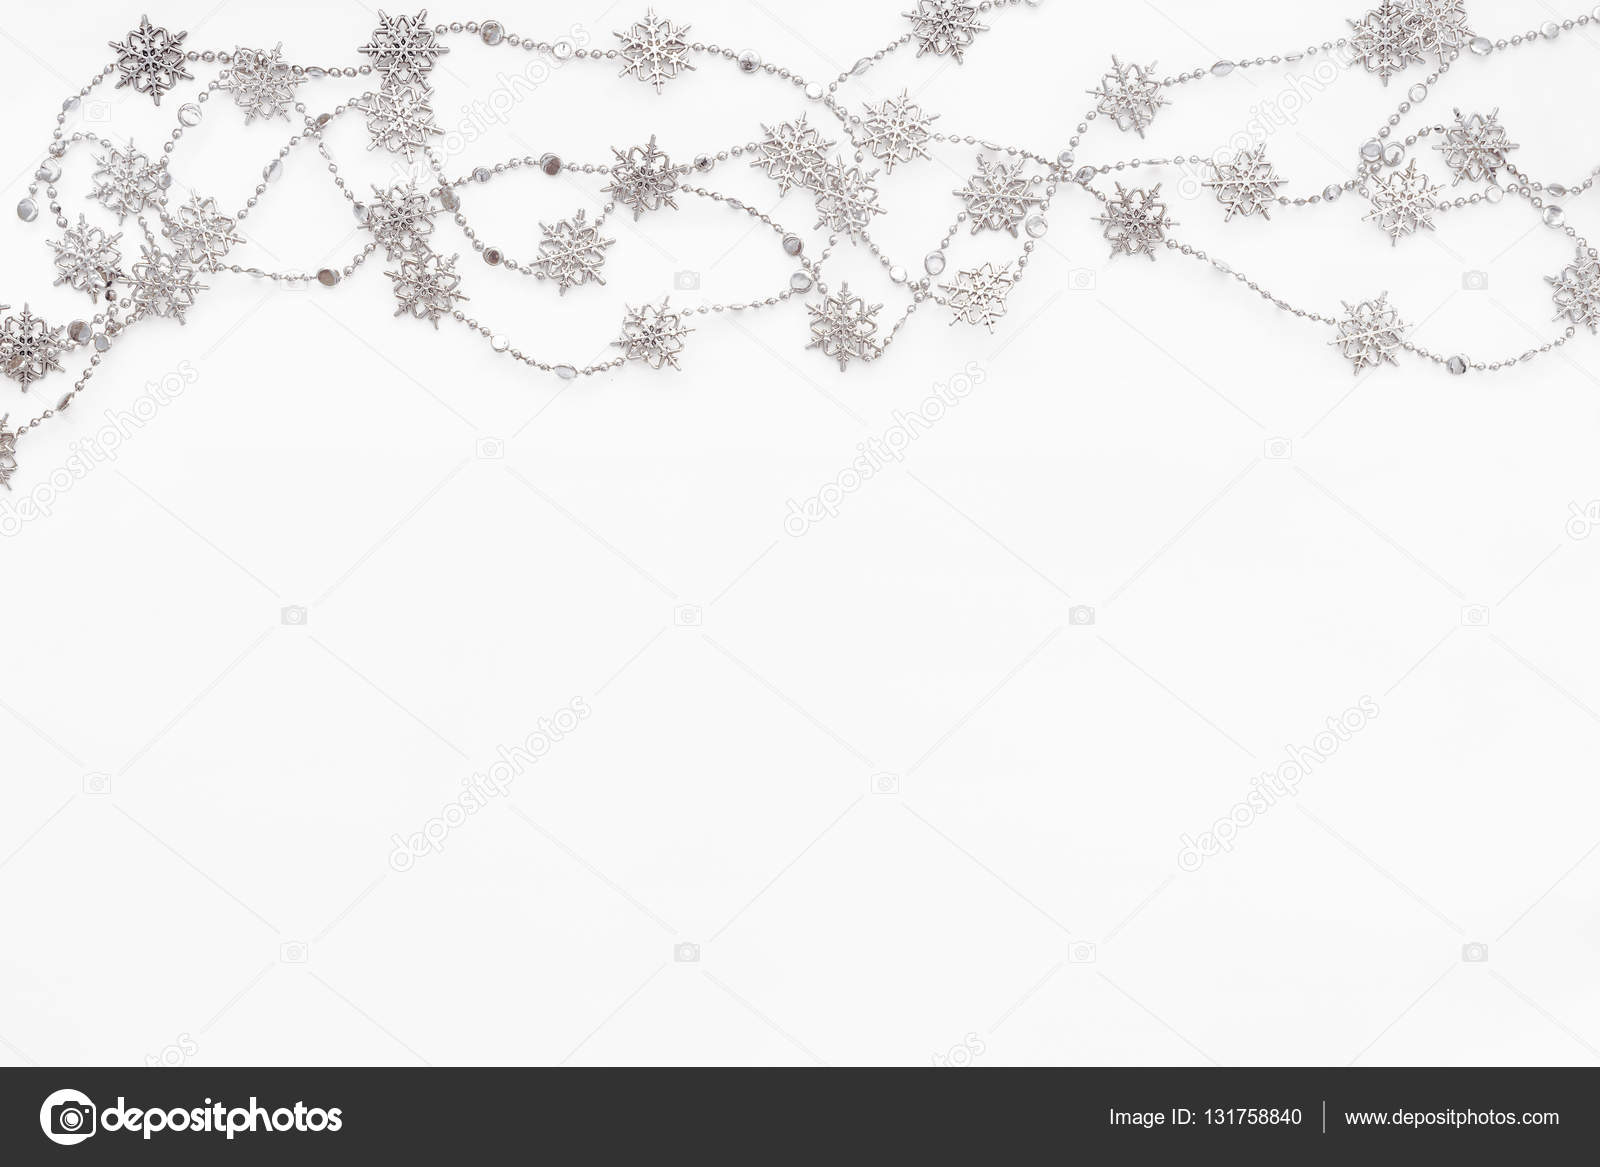 clear white background with border of silver chain with snowflakes christmas and new year holiday background with place for text flat lay top view